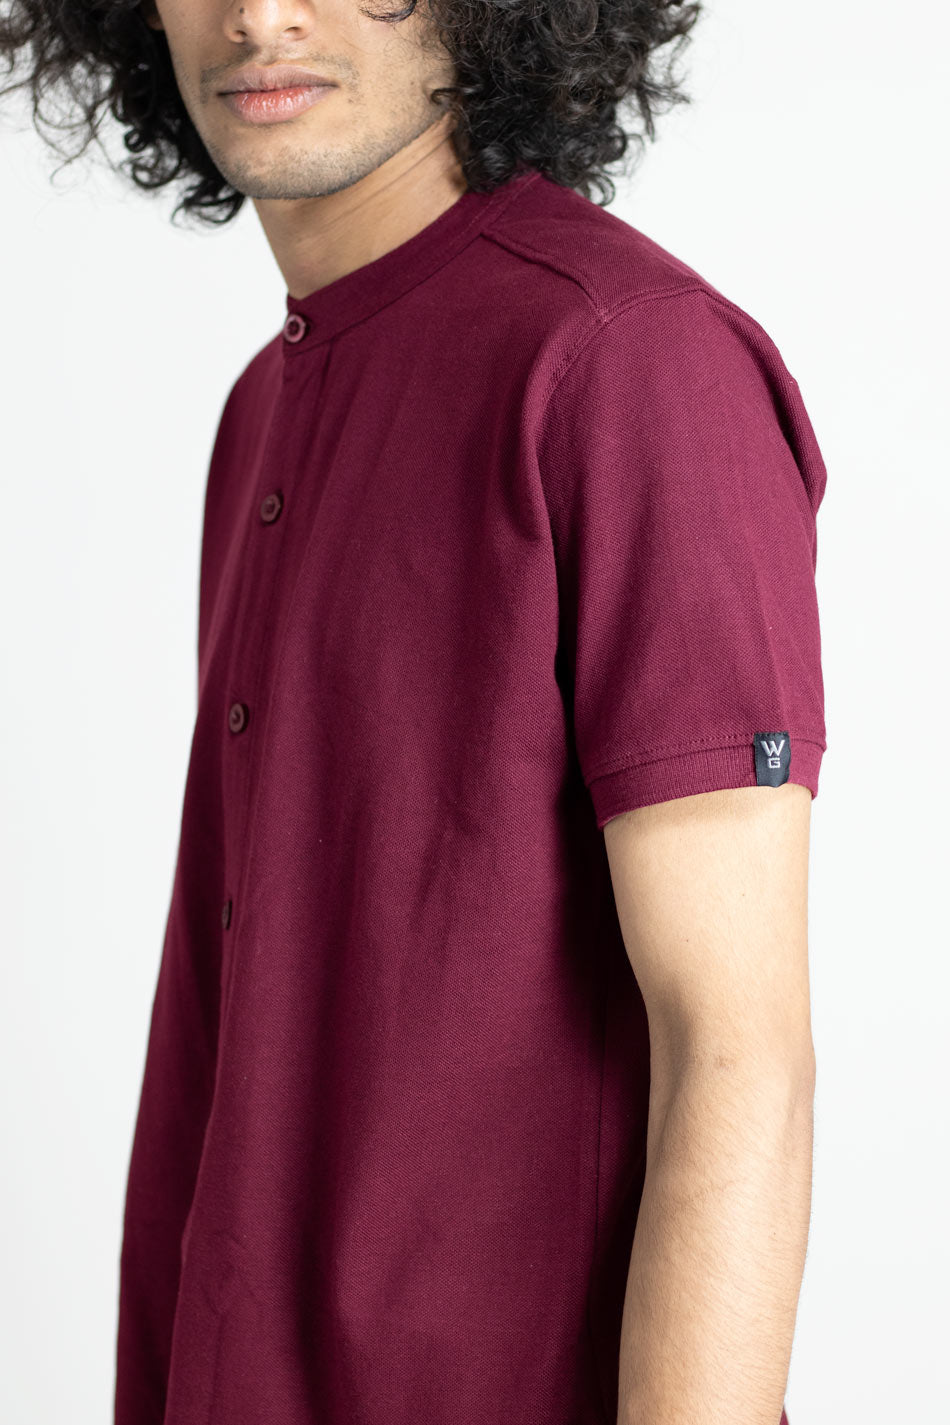 Maroon Oak - Marcella Shirt by Wildgear